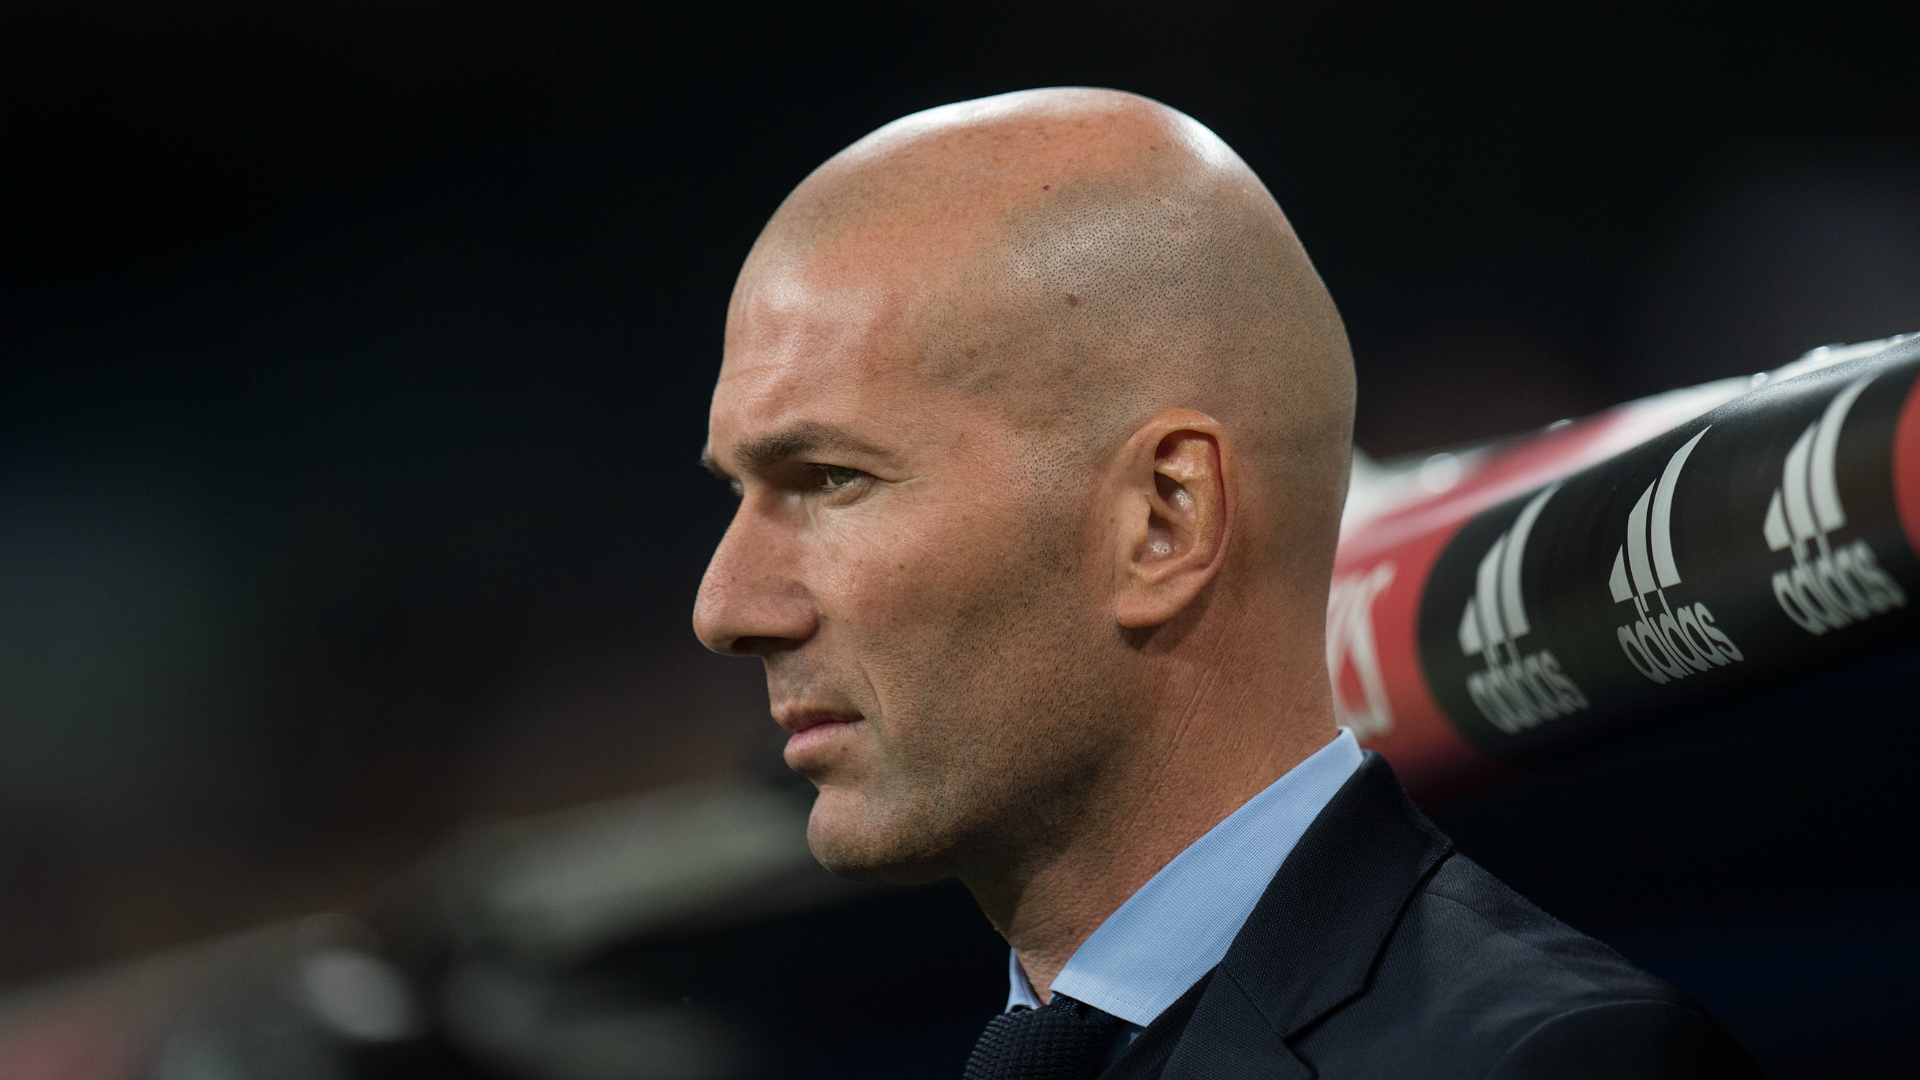 Zinedine Zidane admits he's 'under pressure' after another home defeat